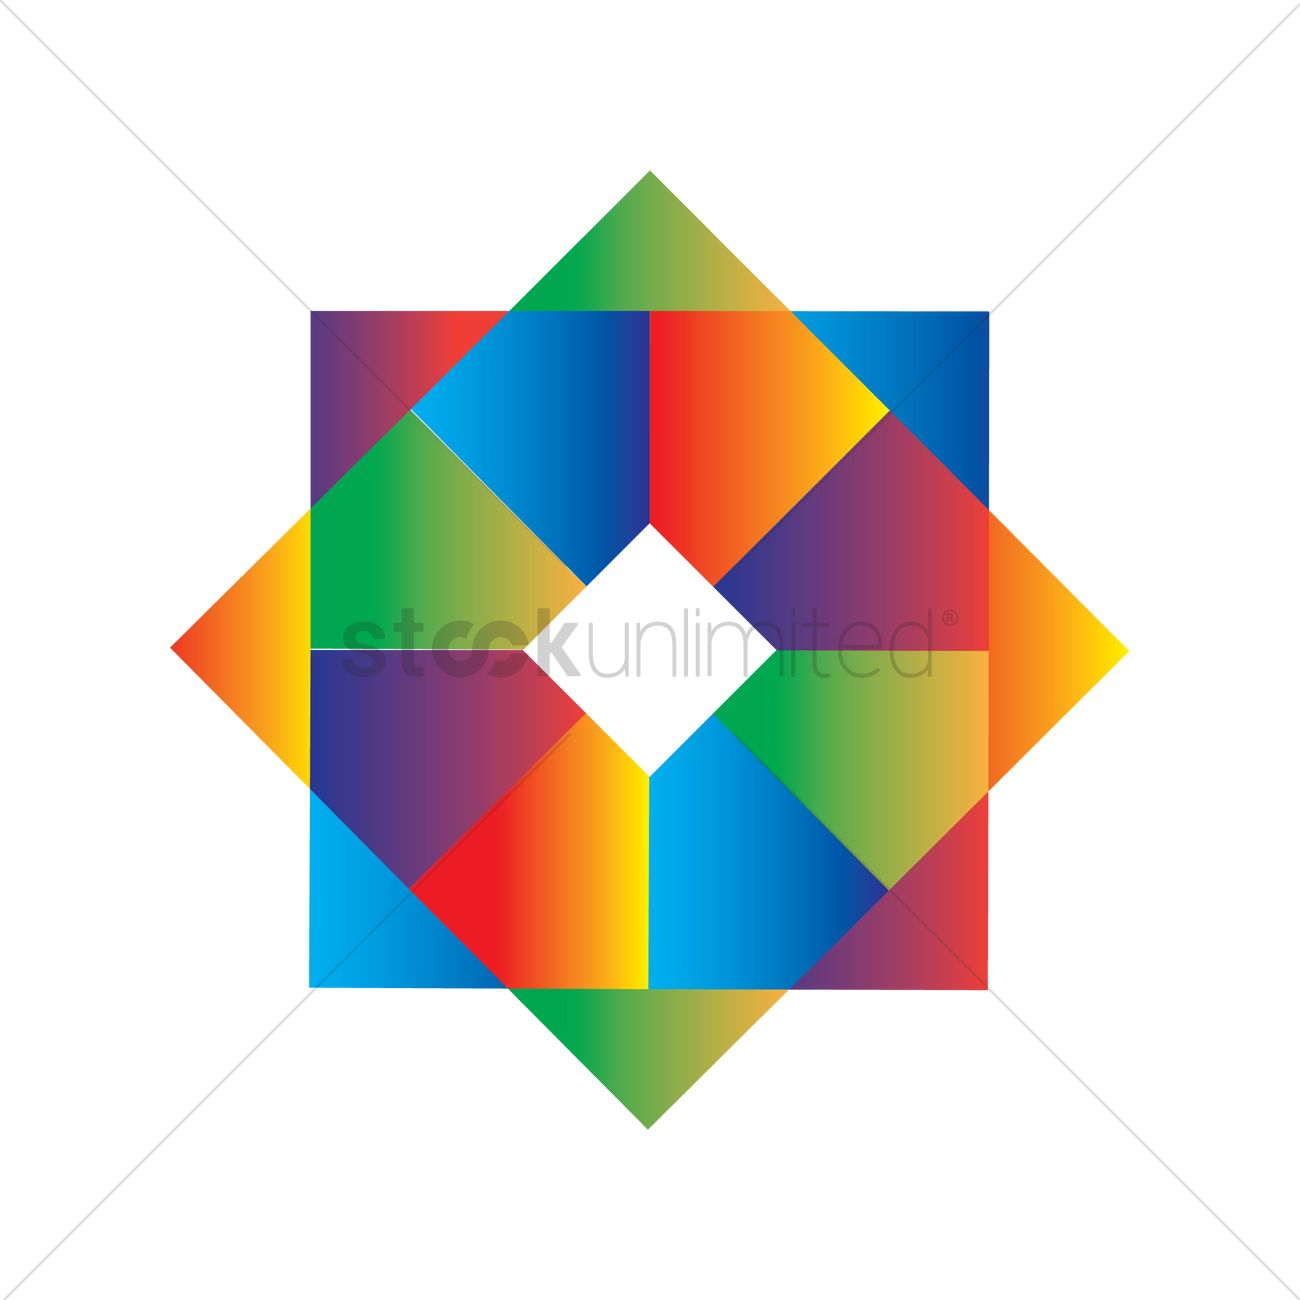 abstract geometric octagon shape - photo #29